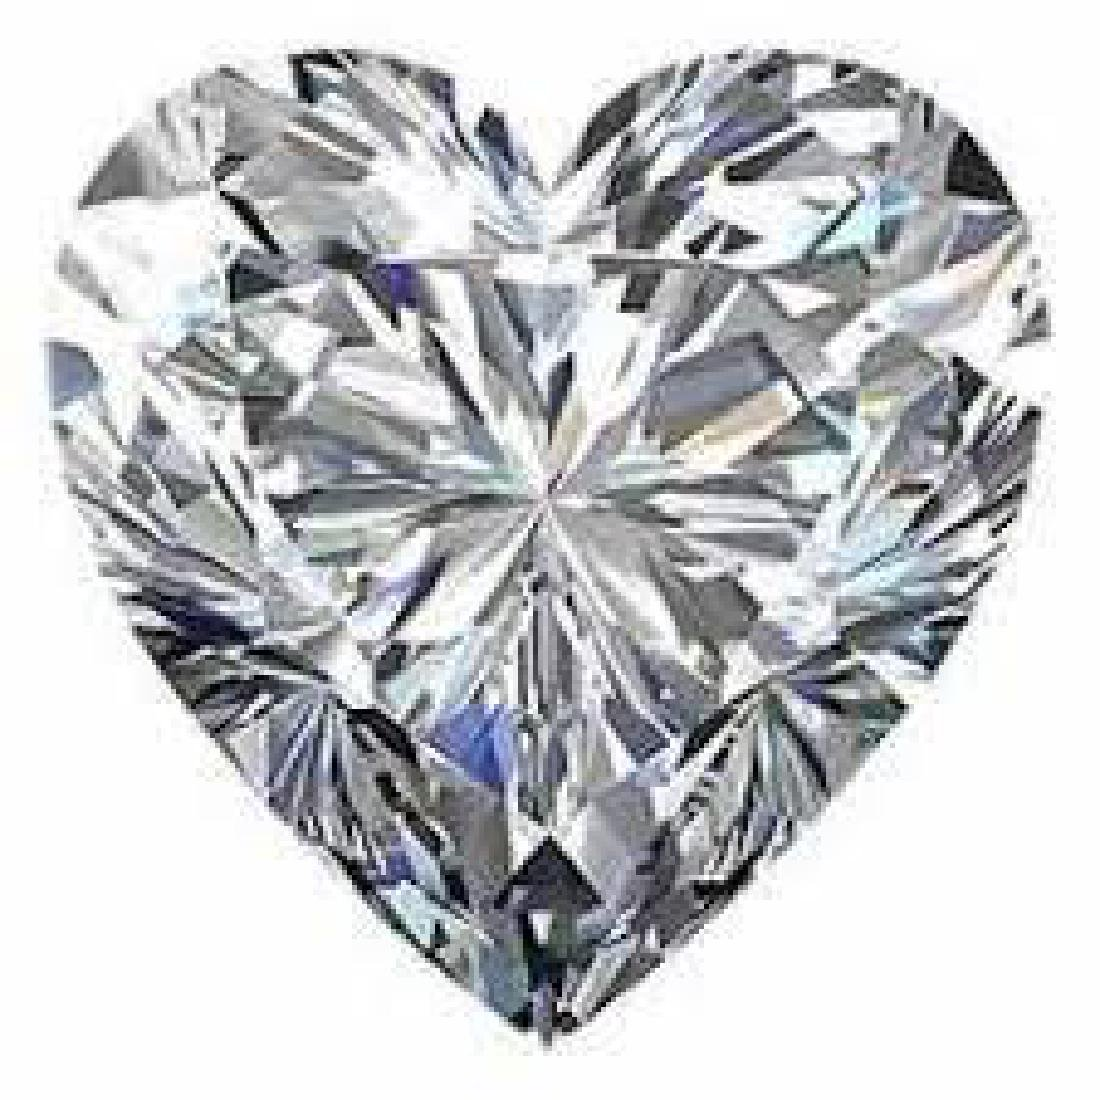 10 carat Heart Facet BIANCO Diamond